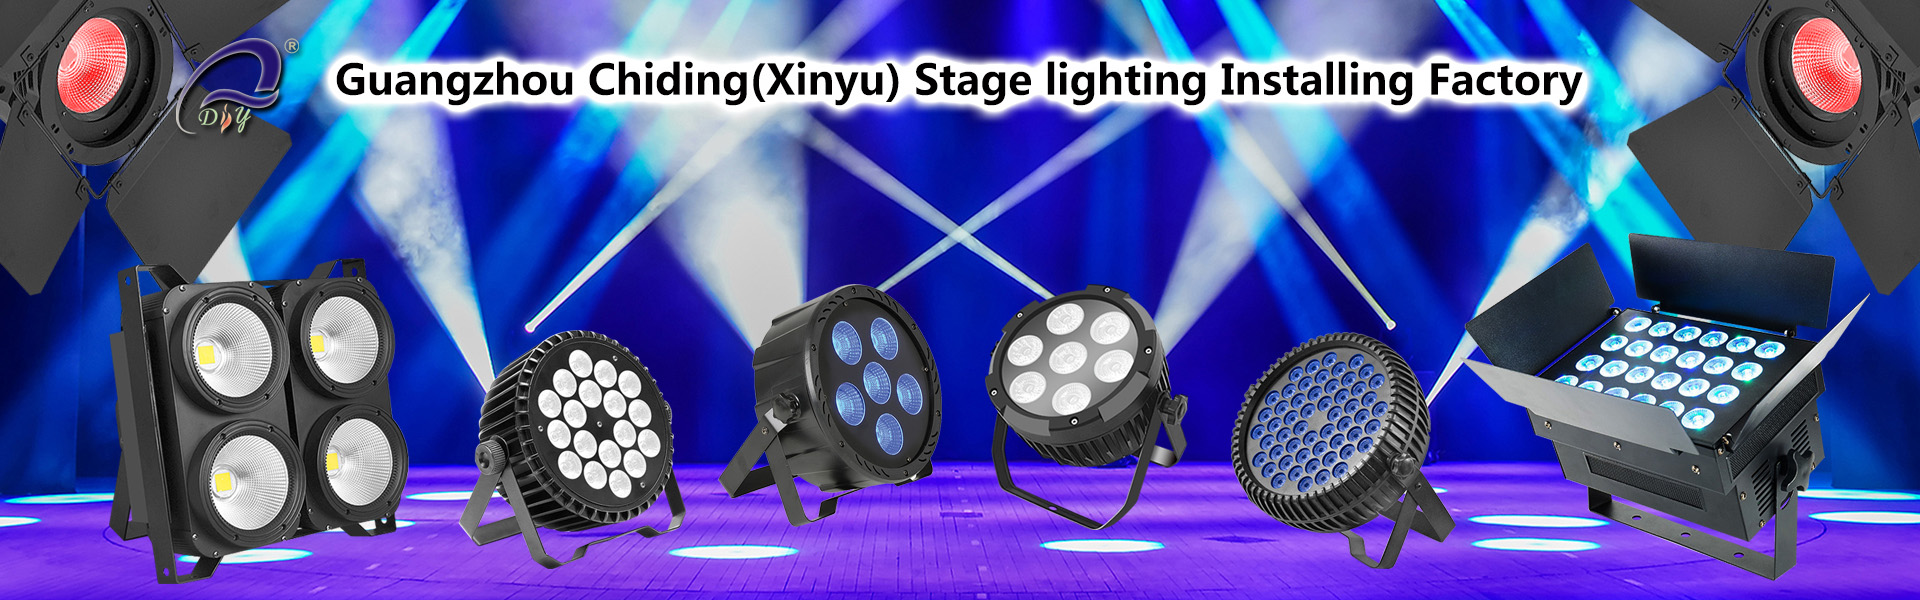 LED 、 照明 照明 ム ー ン グ 、、、、、、、、、,guangzhou chiding stage lighting co ltd